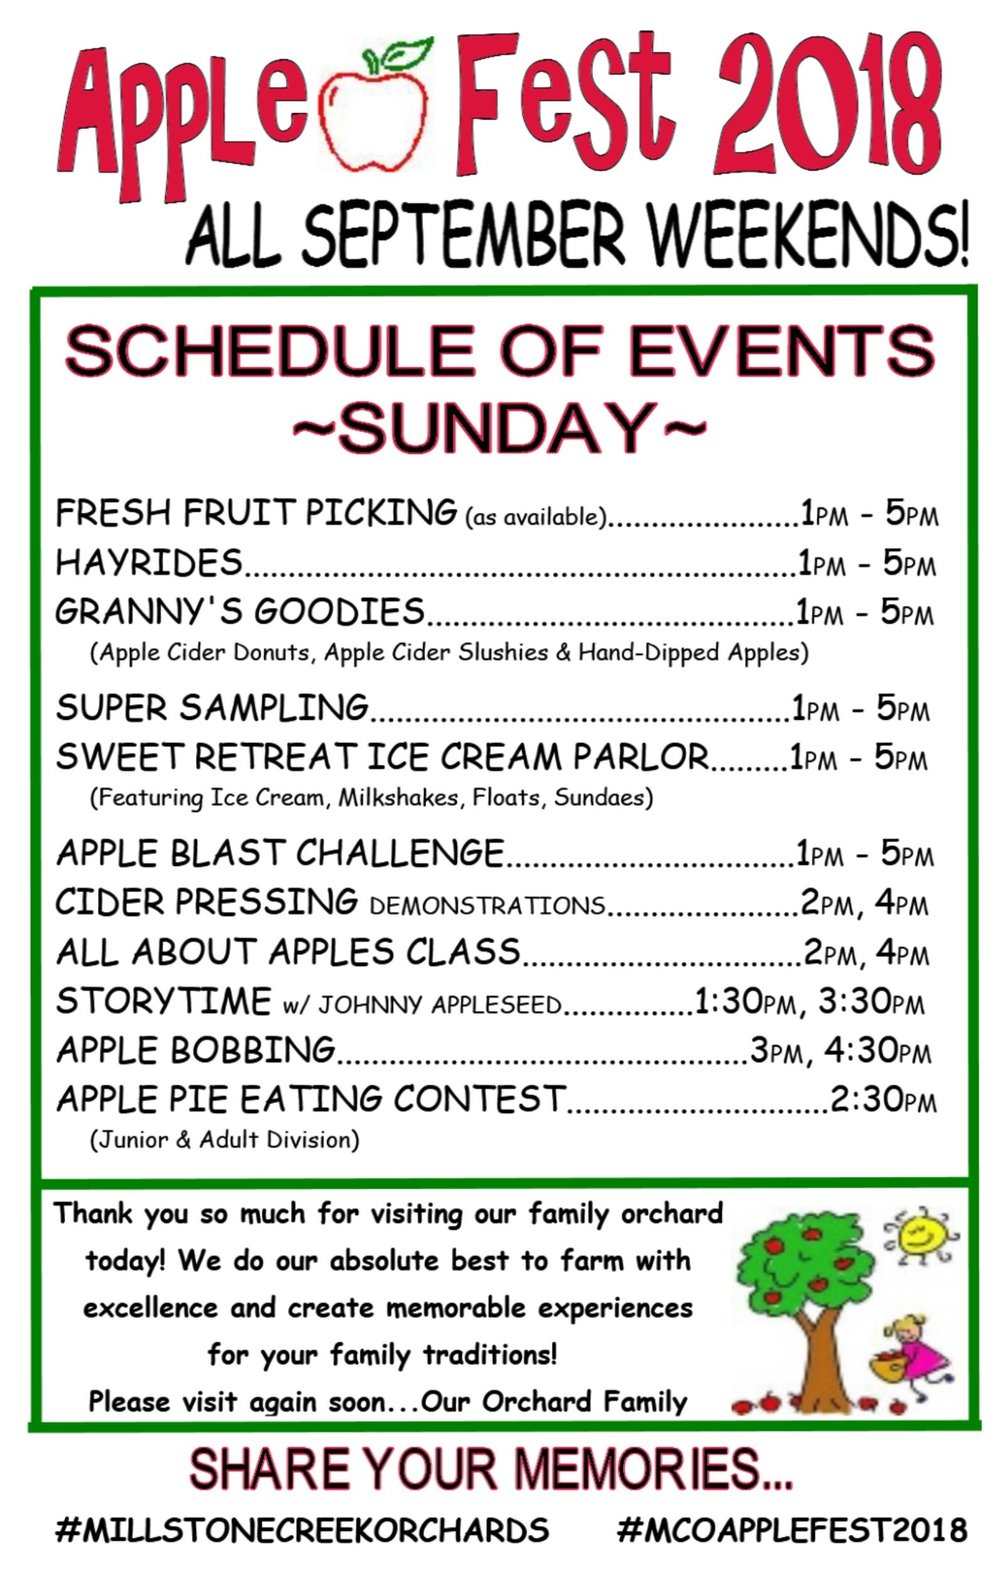 AppleFest - Schedule of Events Sunday.jpg